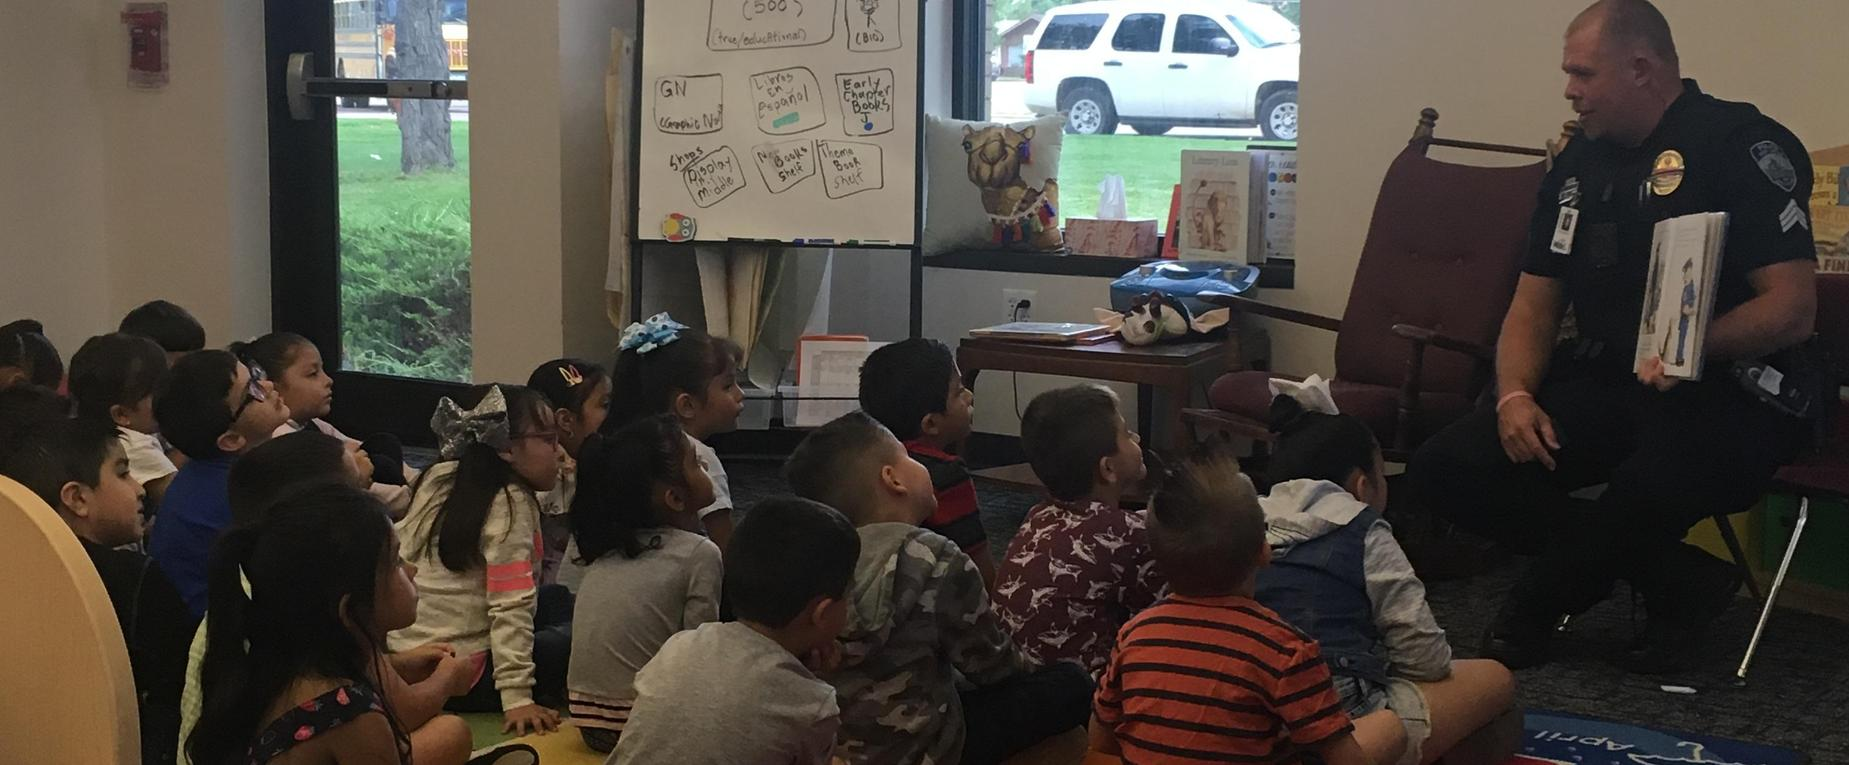 SRO Hemple Reads to Butler Students